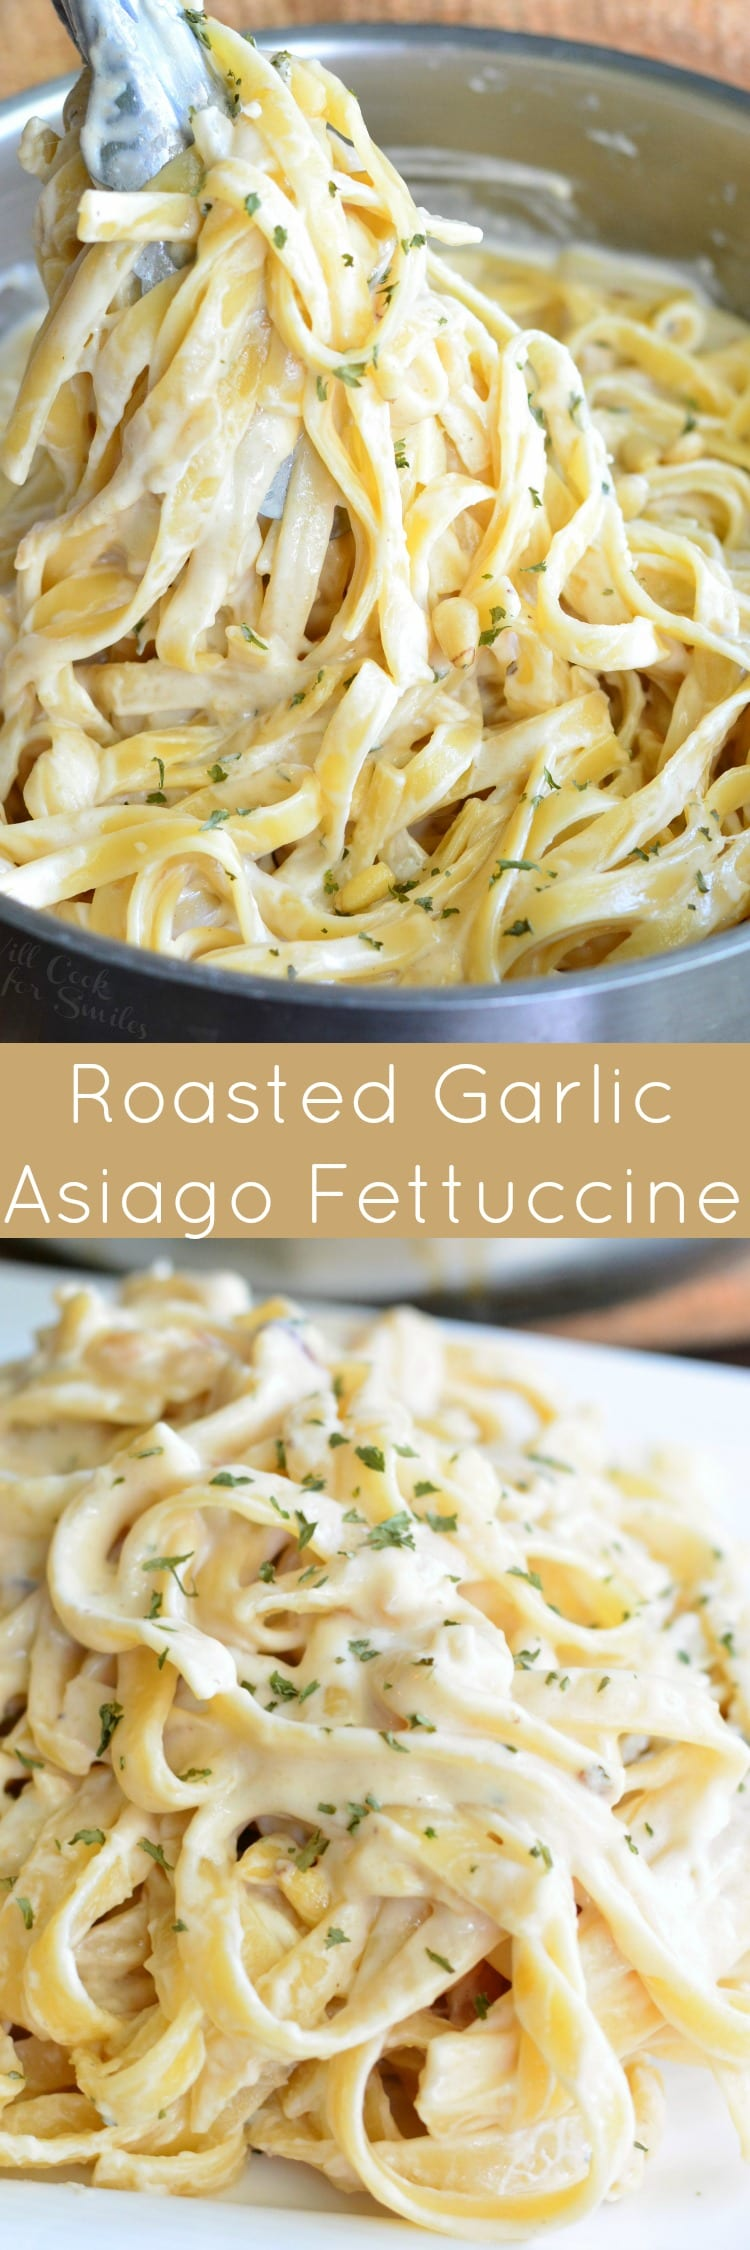 Roasted Garlic Asiago Fettuccine. This fettuccine dish is made with a creamy sauce that features roasted garlic and Asiago cheese. This pasta dish is served with pine nuts and parsley.